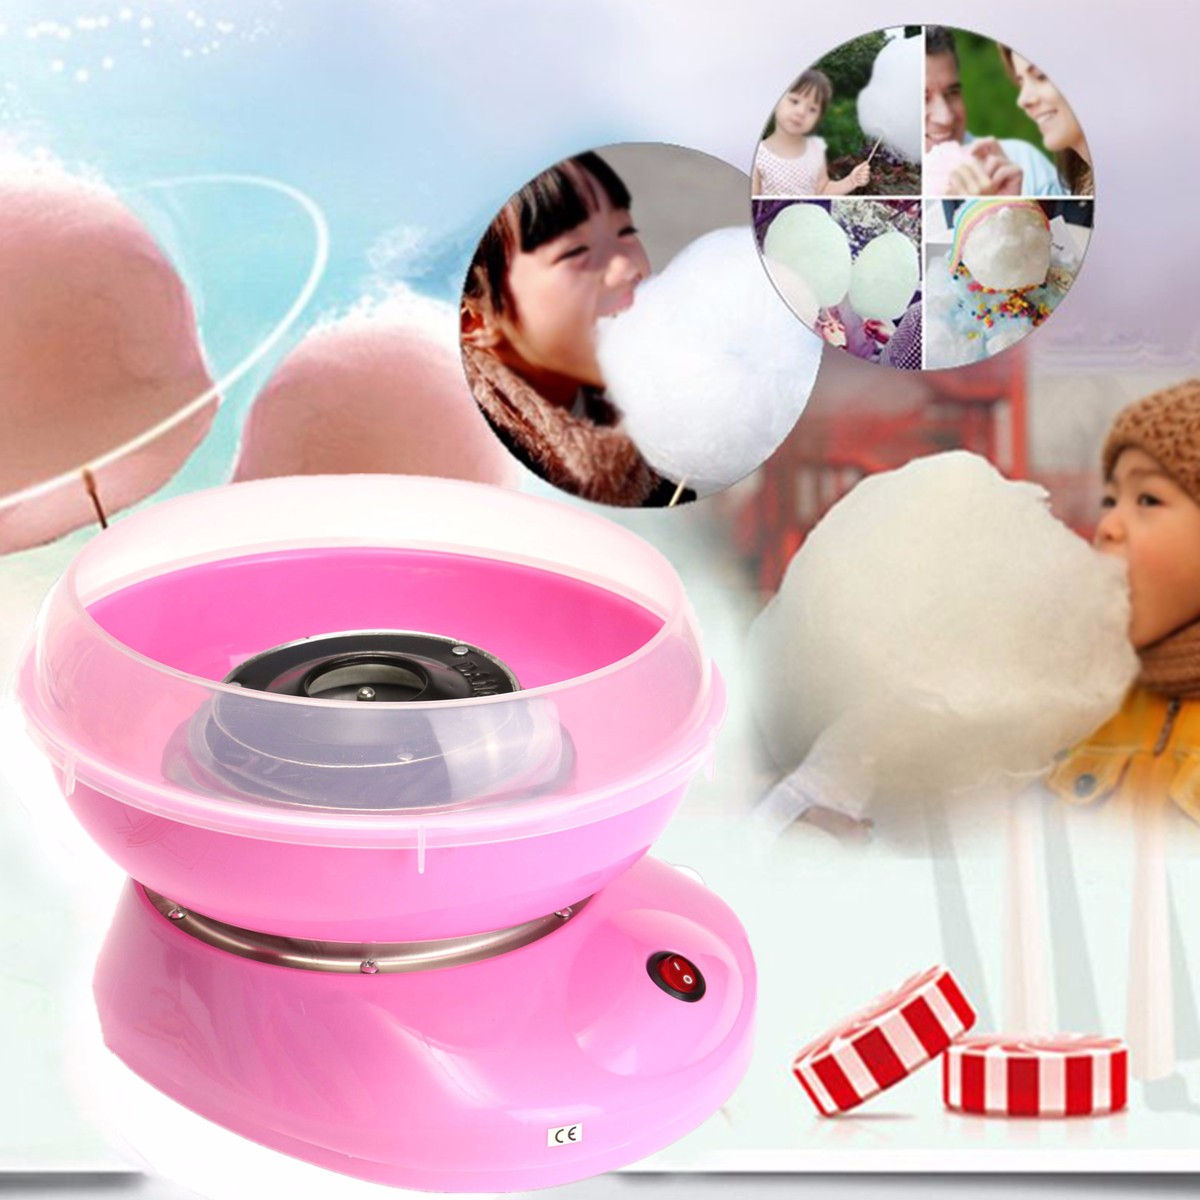 Creatives Portable Electric Cotton Candy Machine Home Party DIY Fancy Pink Candy Making Machine Home Party Kids Creatives Gift